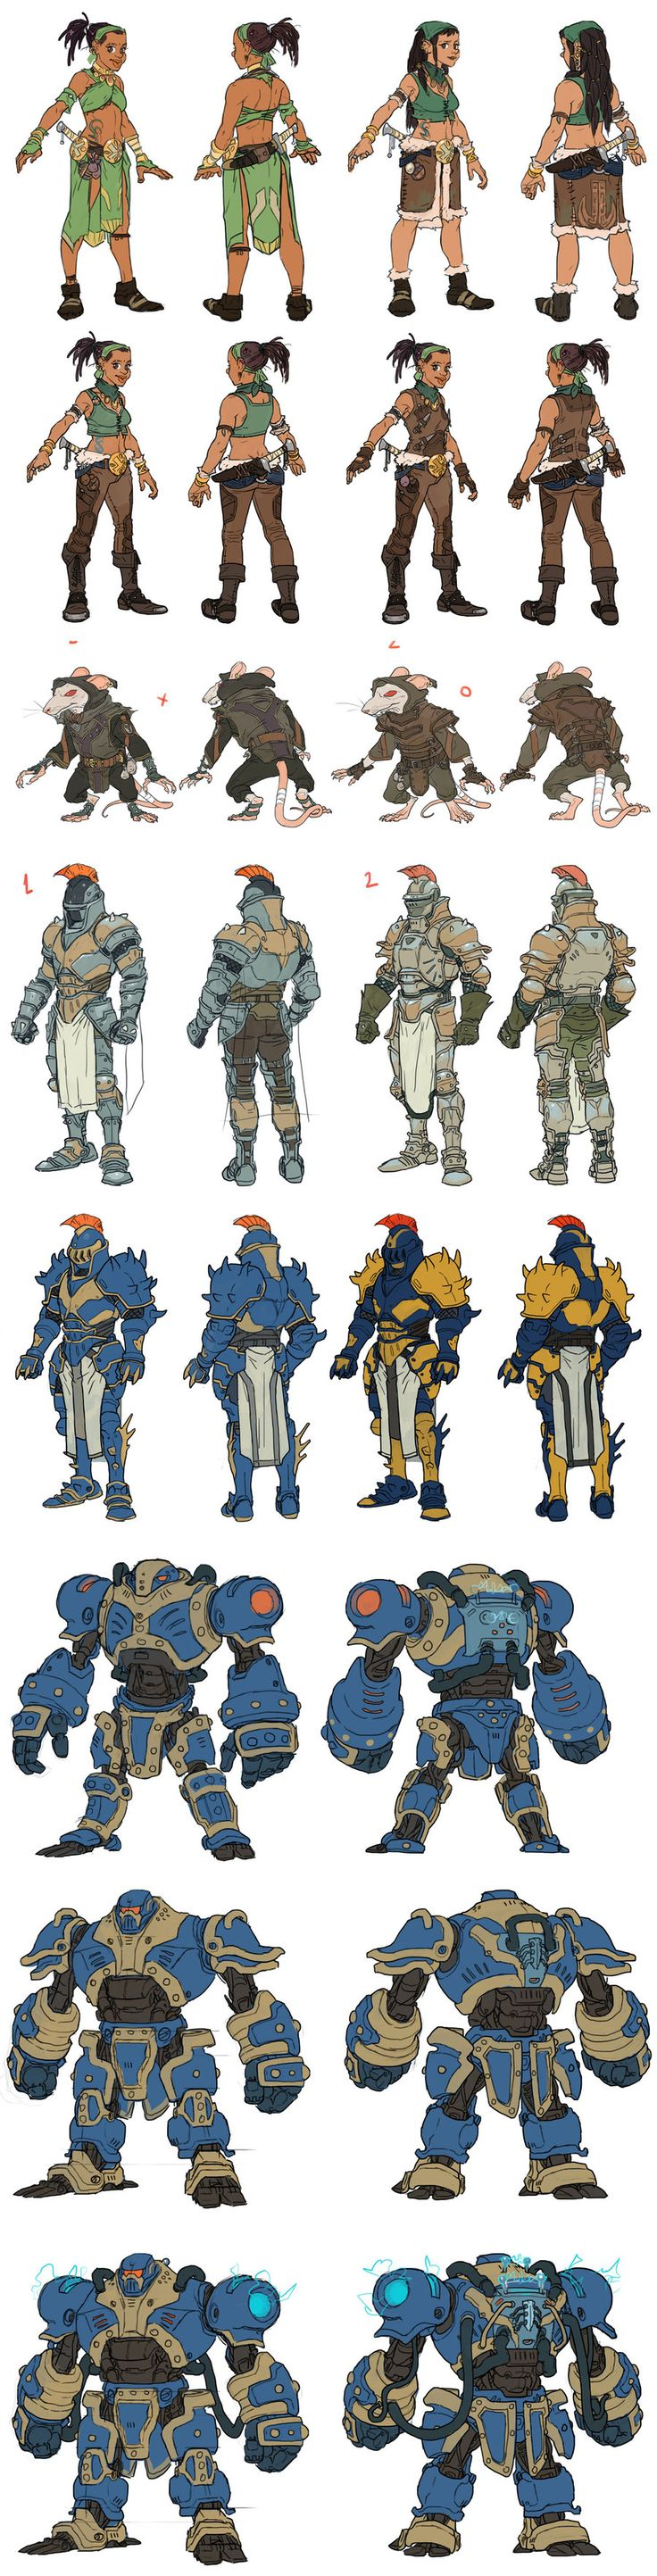 Character Design Learning : Best images about game art on pinterest comic a